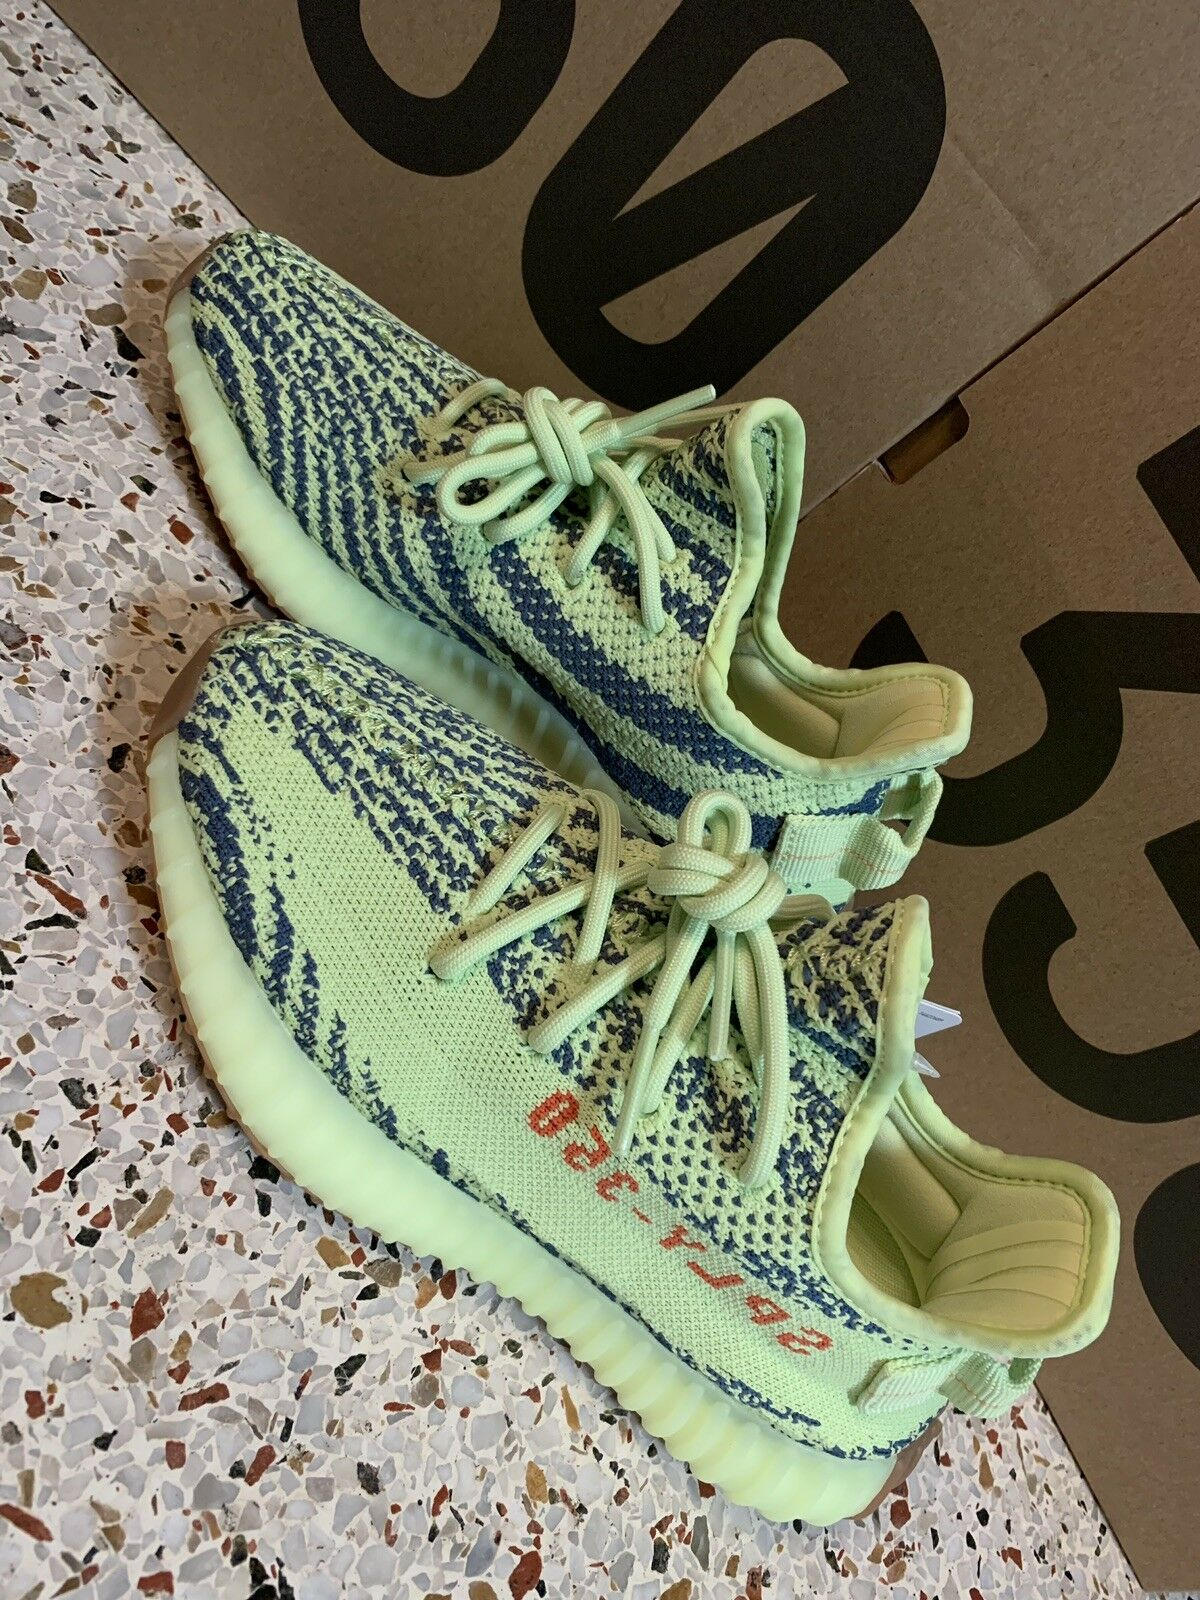 Adidas Yeezy Boost 350 v2 Frozen Yellow size 10 With Receipt 100% Authentic